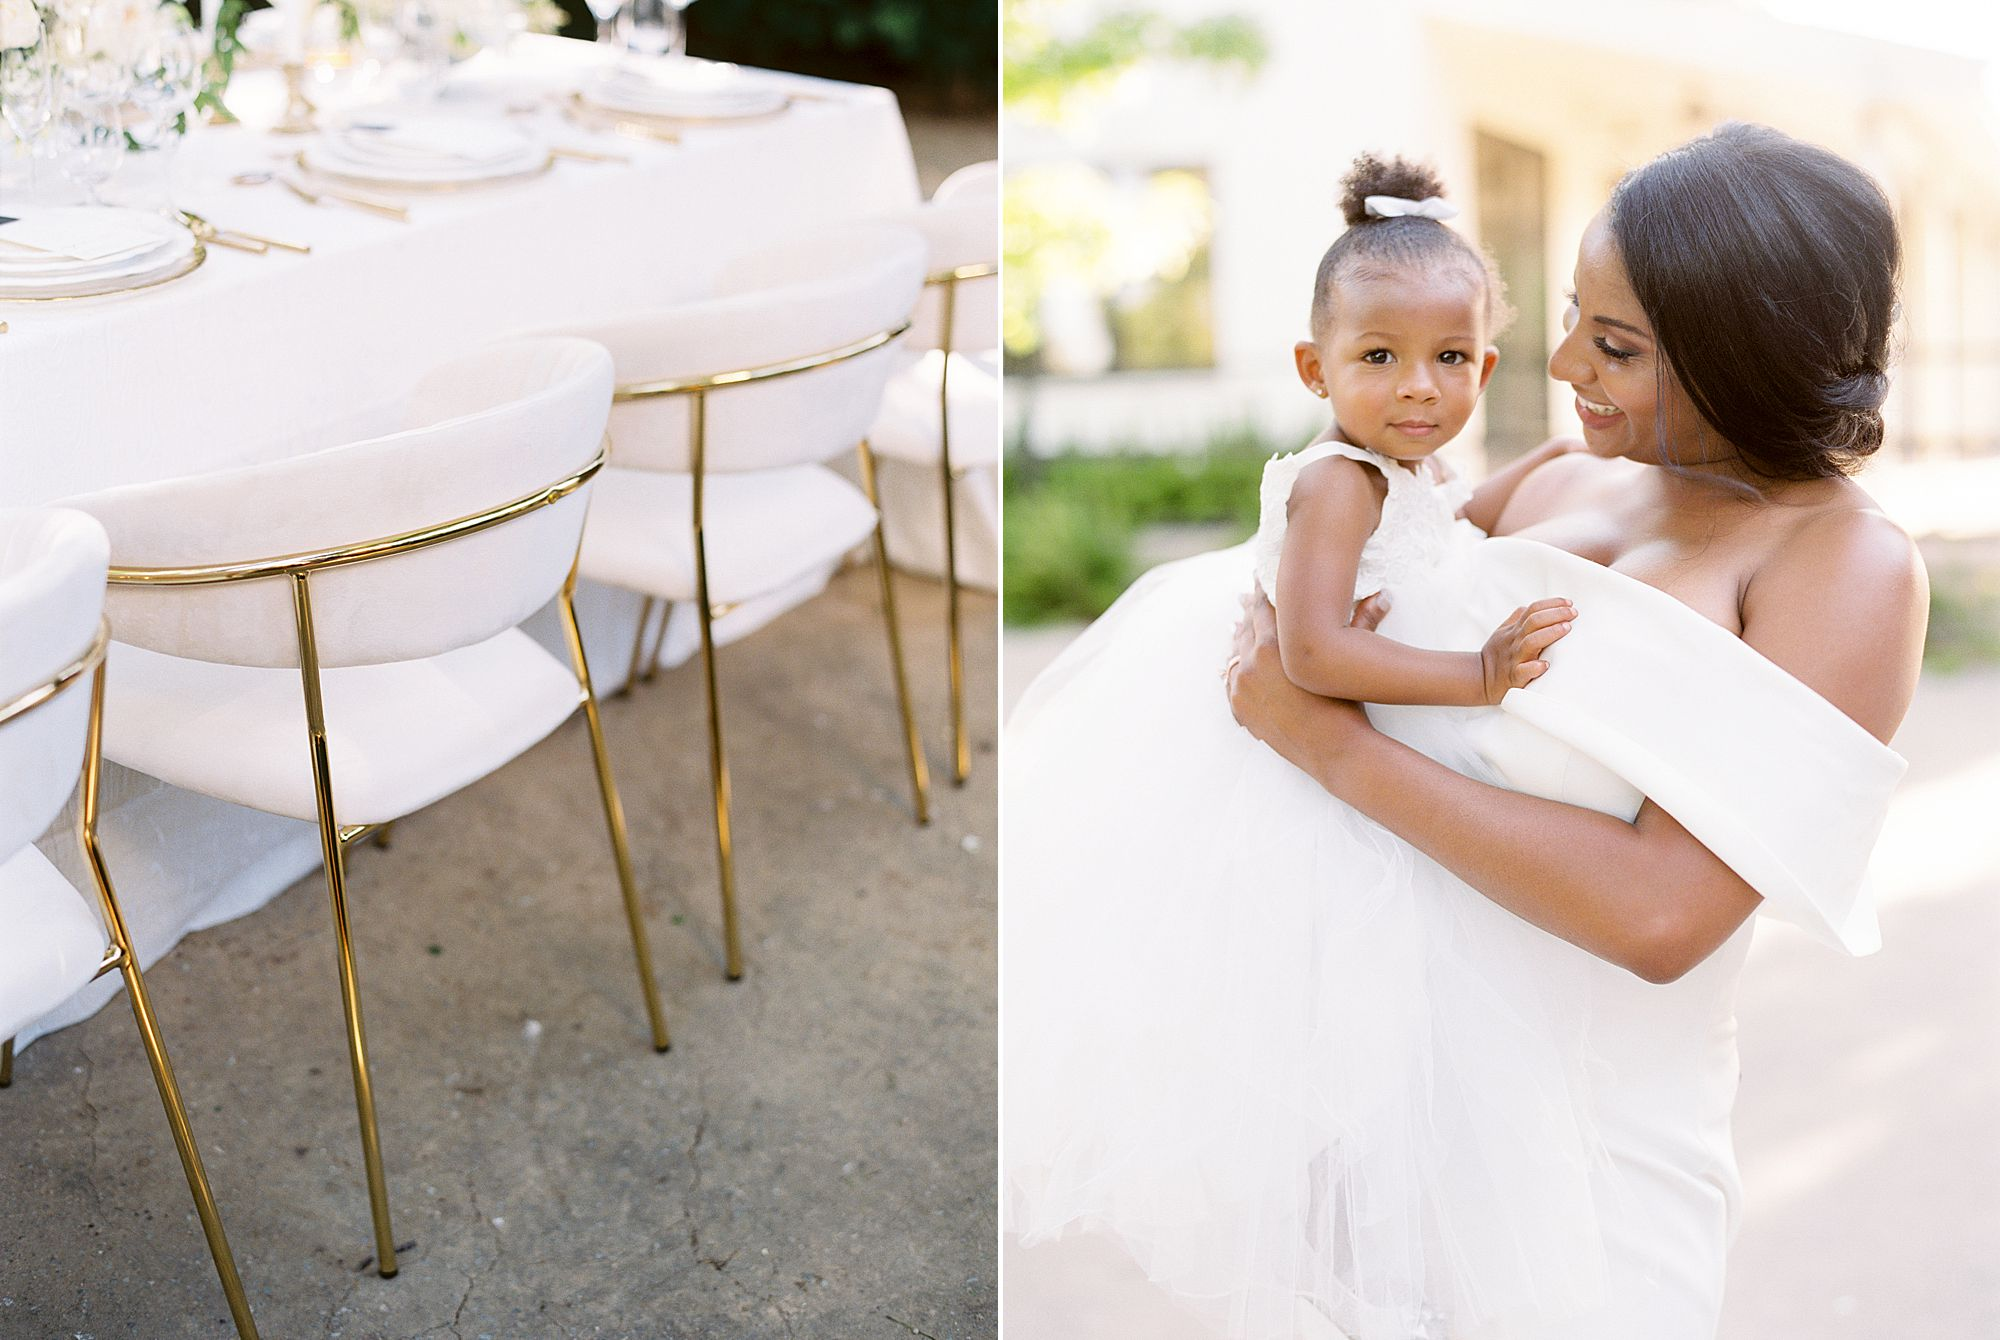 Park Winters Micro-Wedding Inspiration on Style Me Pretty - Stephanie Teague Events - Ashley Baumgartner - Park Winters Wedding - Black Tie Wedding - Micro-Wedding Sacramento Photographer_0055.jpg